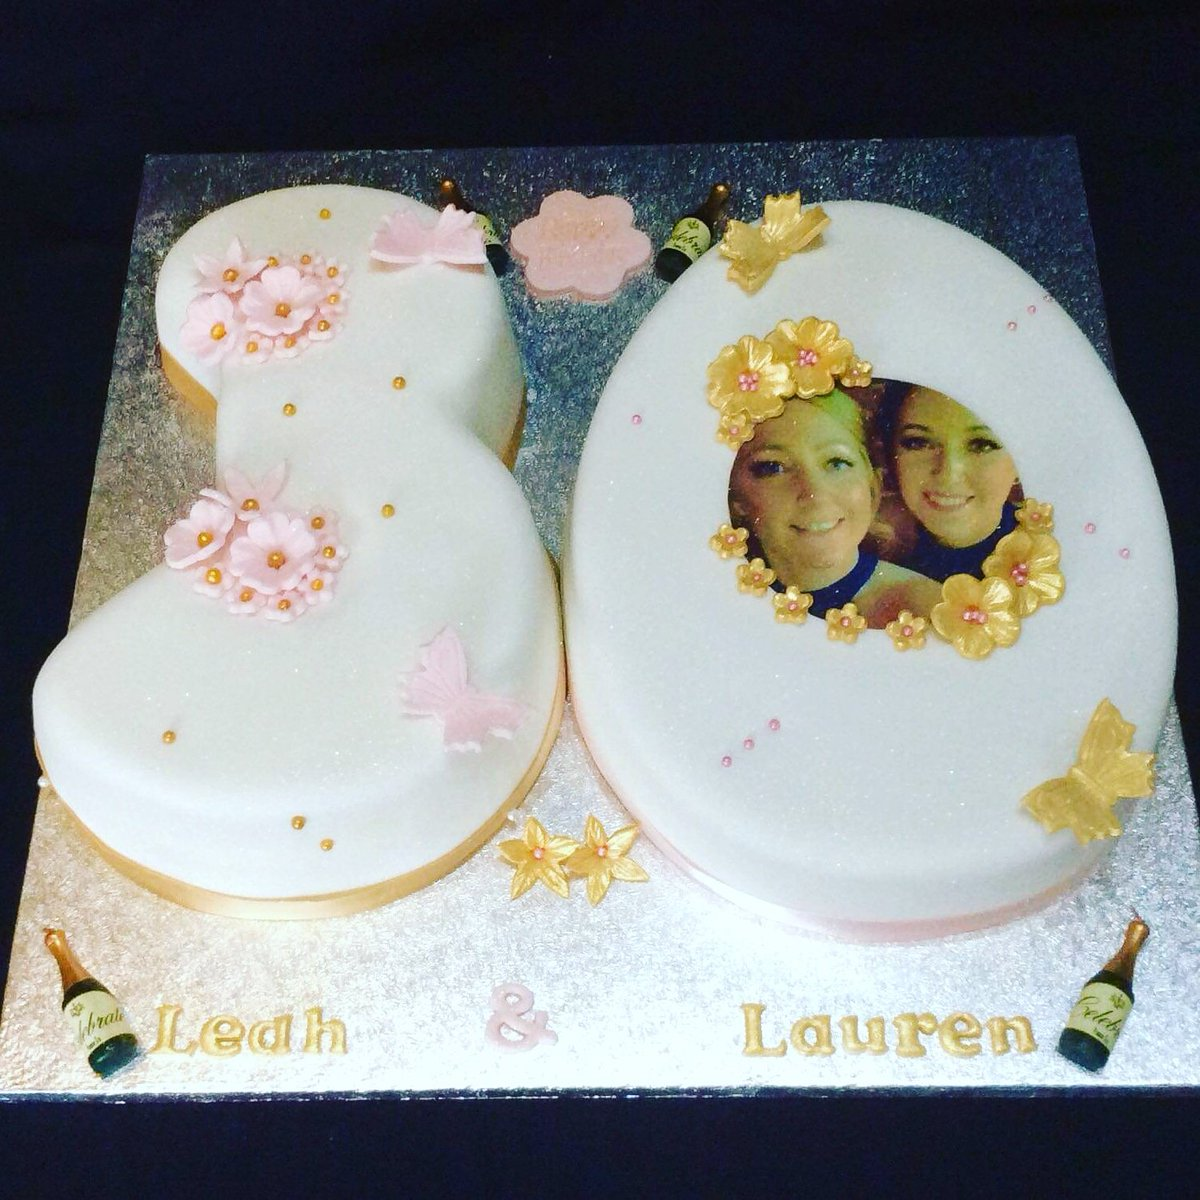 Tina S Cakes على تويتر Cupcakehour 30th Birthday Cake For Twin Ladies 3 Is Salted Caramel 0 Is Chocolate With Handmade Flowers Xx